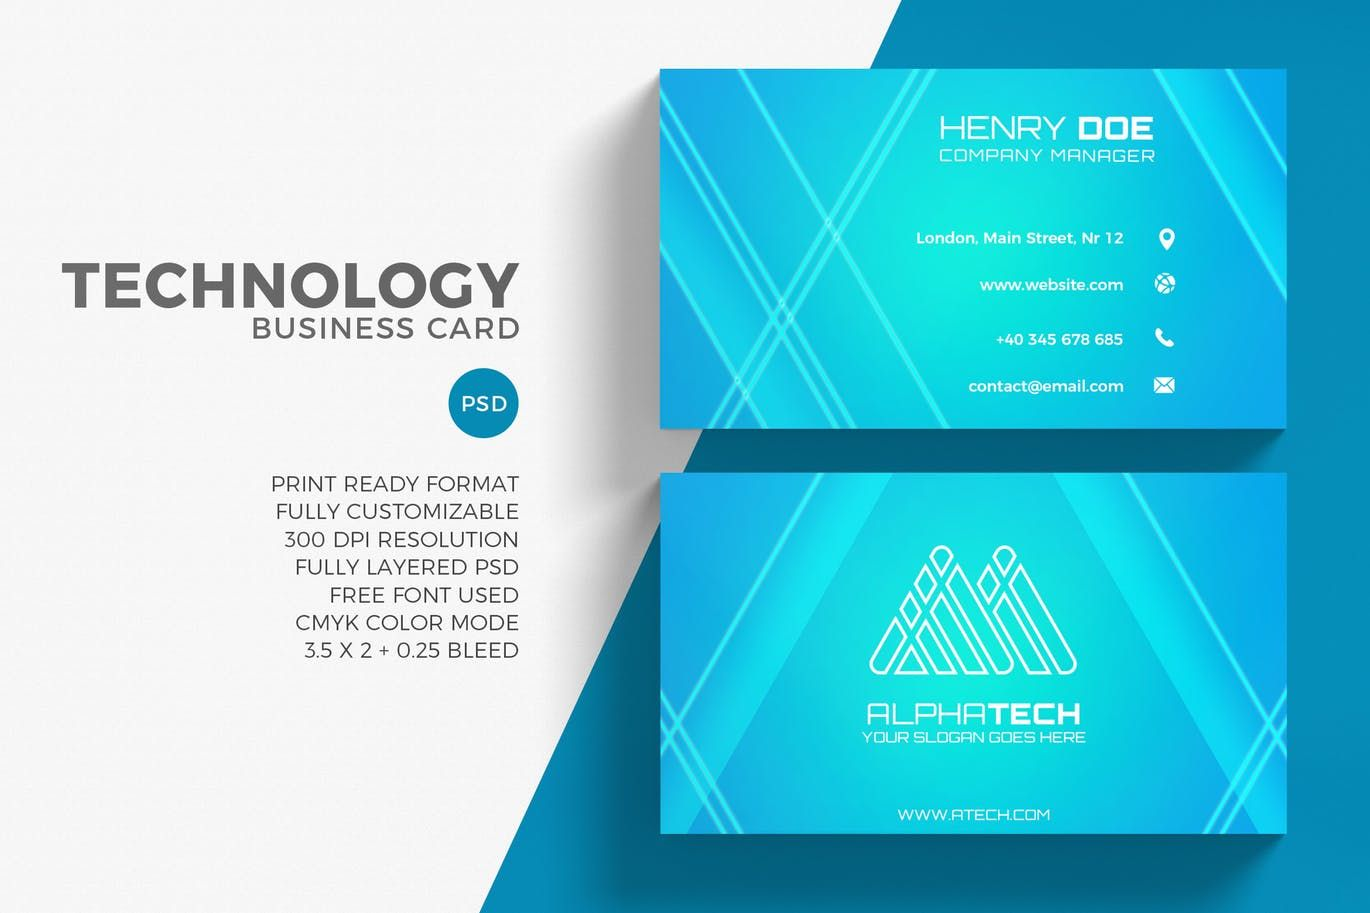 Technology business card template psd business card templates technology business card template psd accmission Images